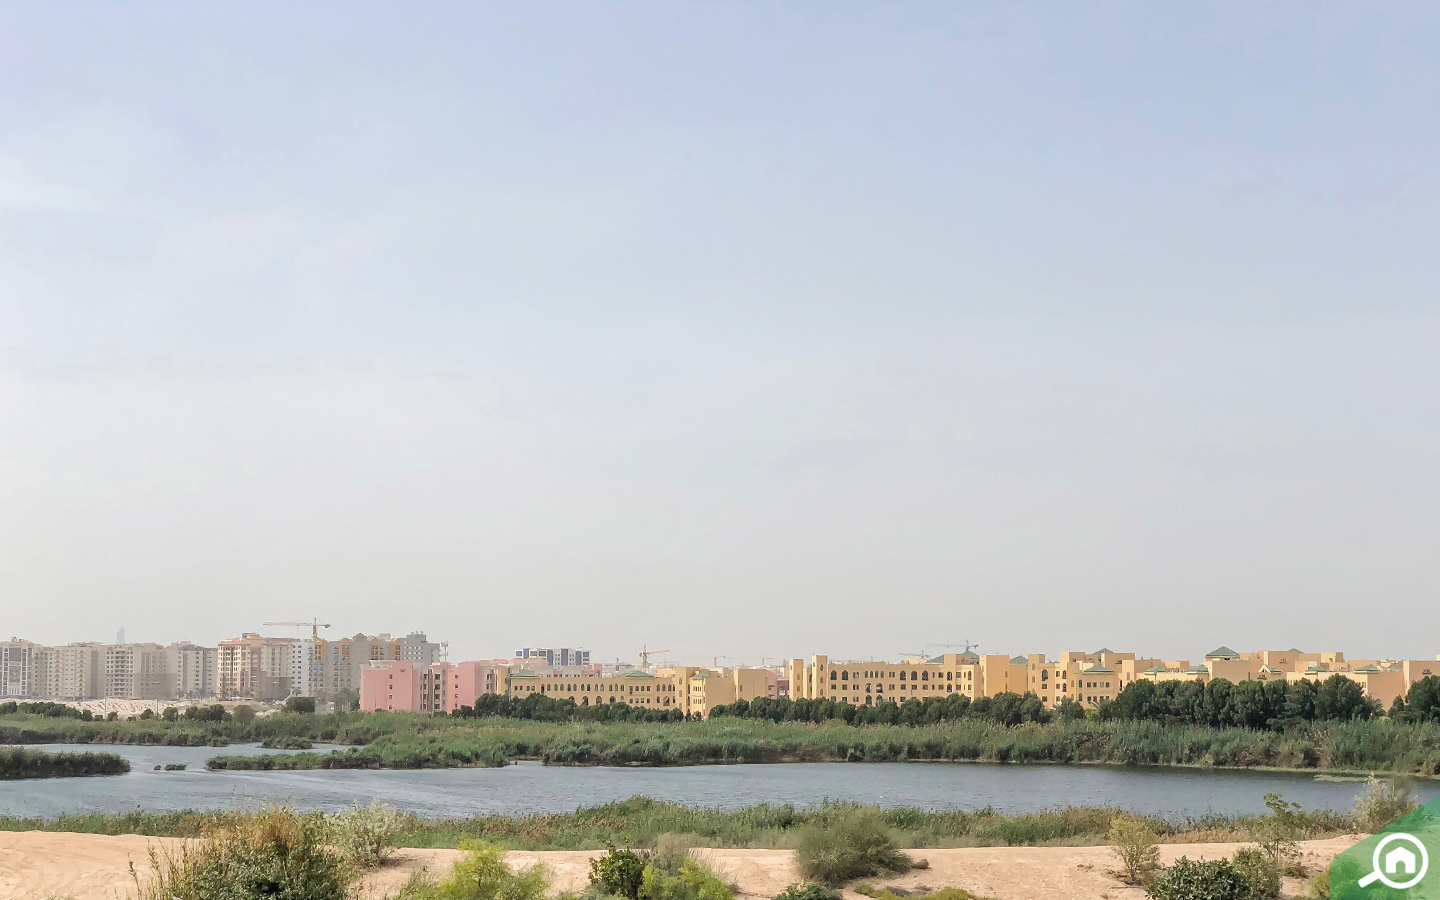 Al Warsan Lake in International City